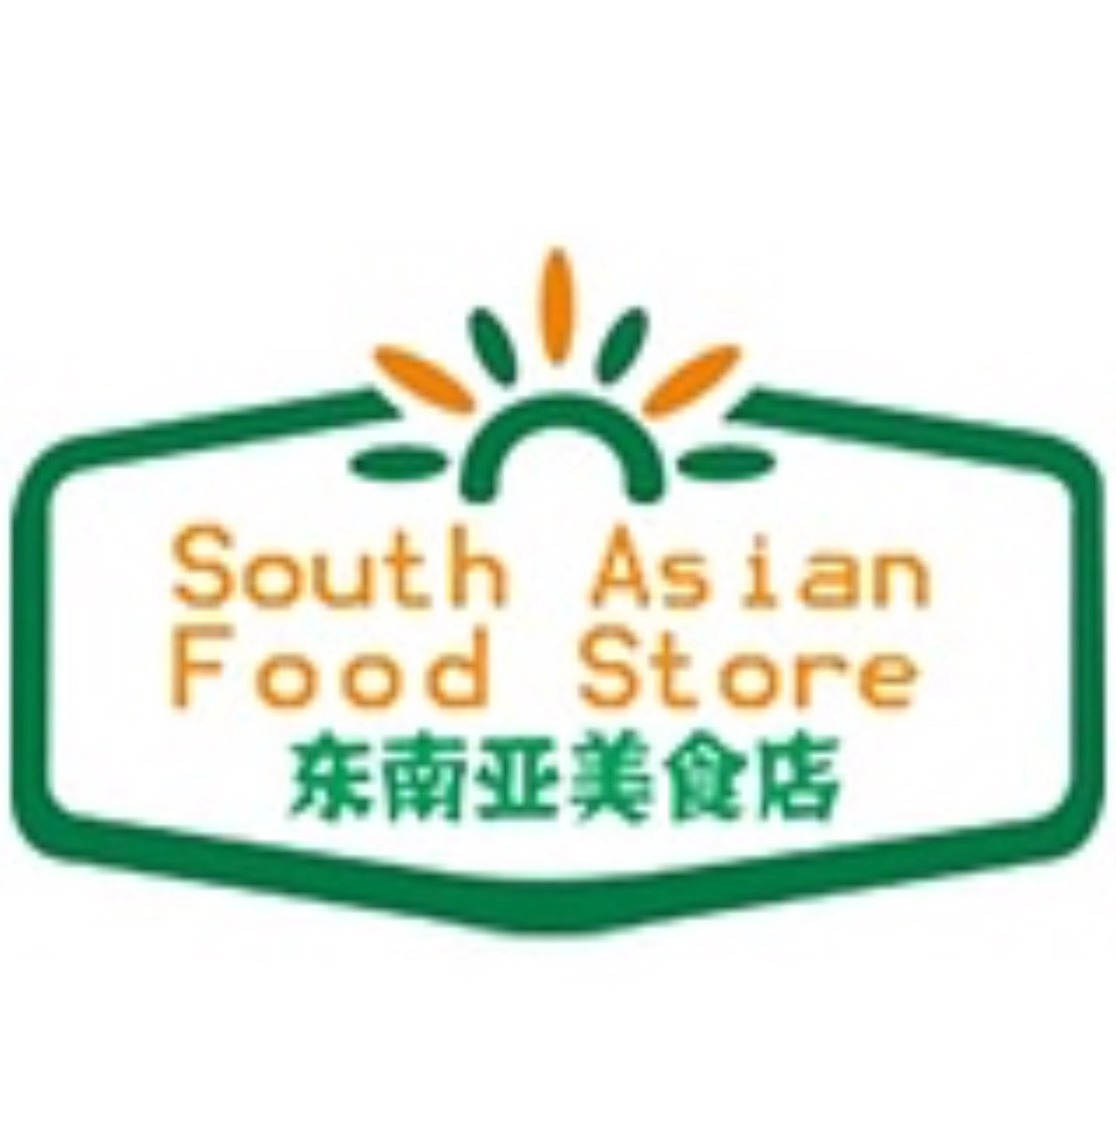 South Asian Food Store